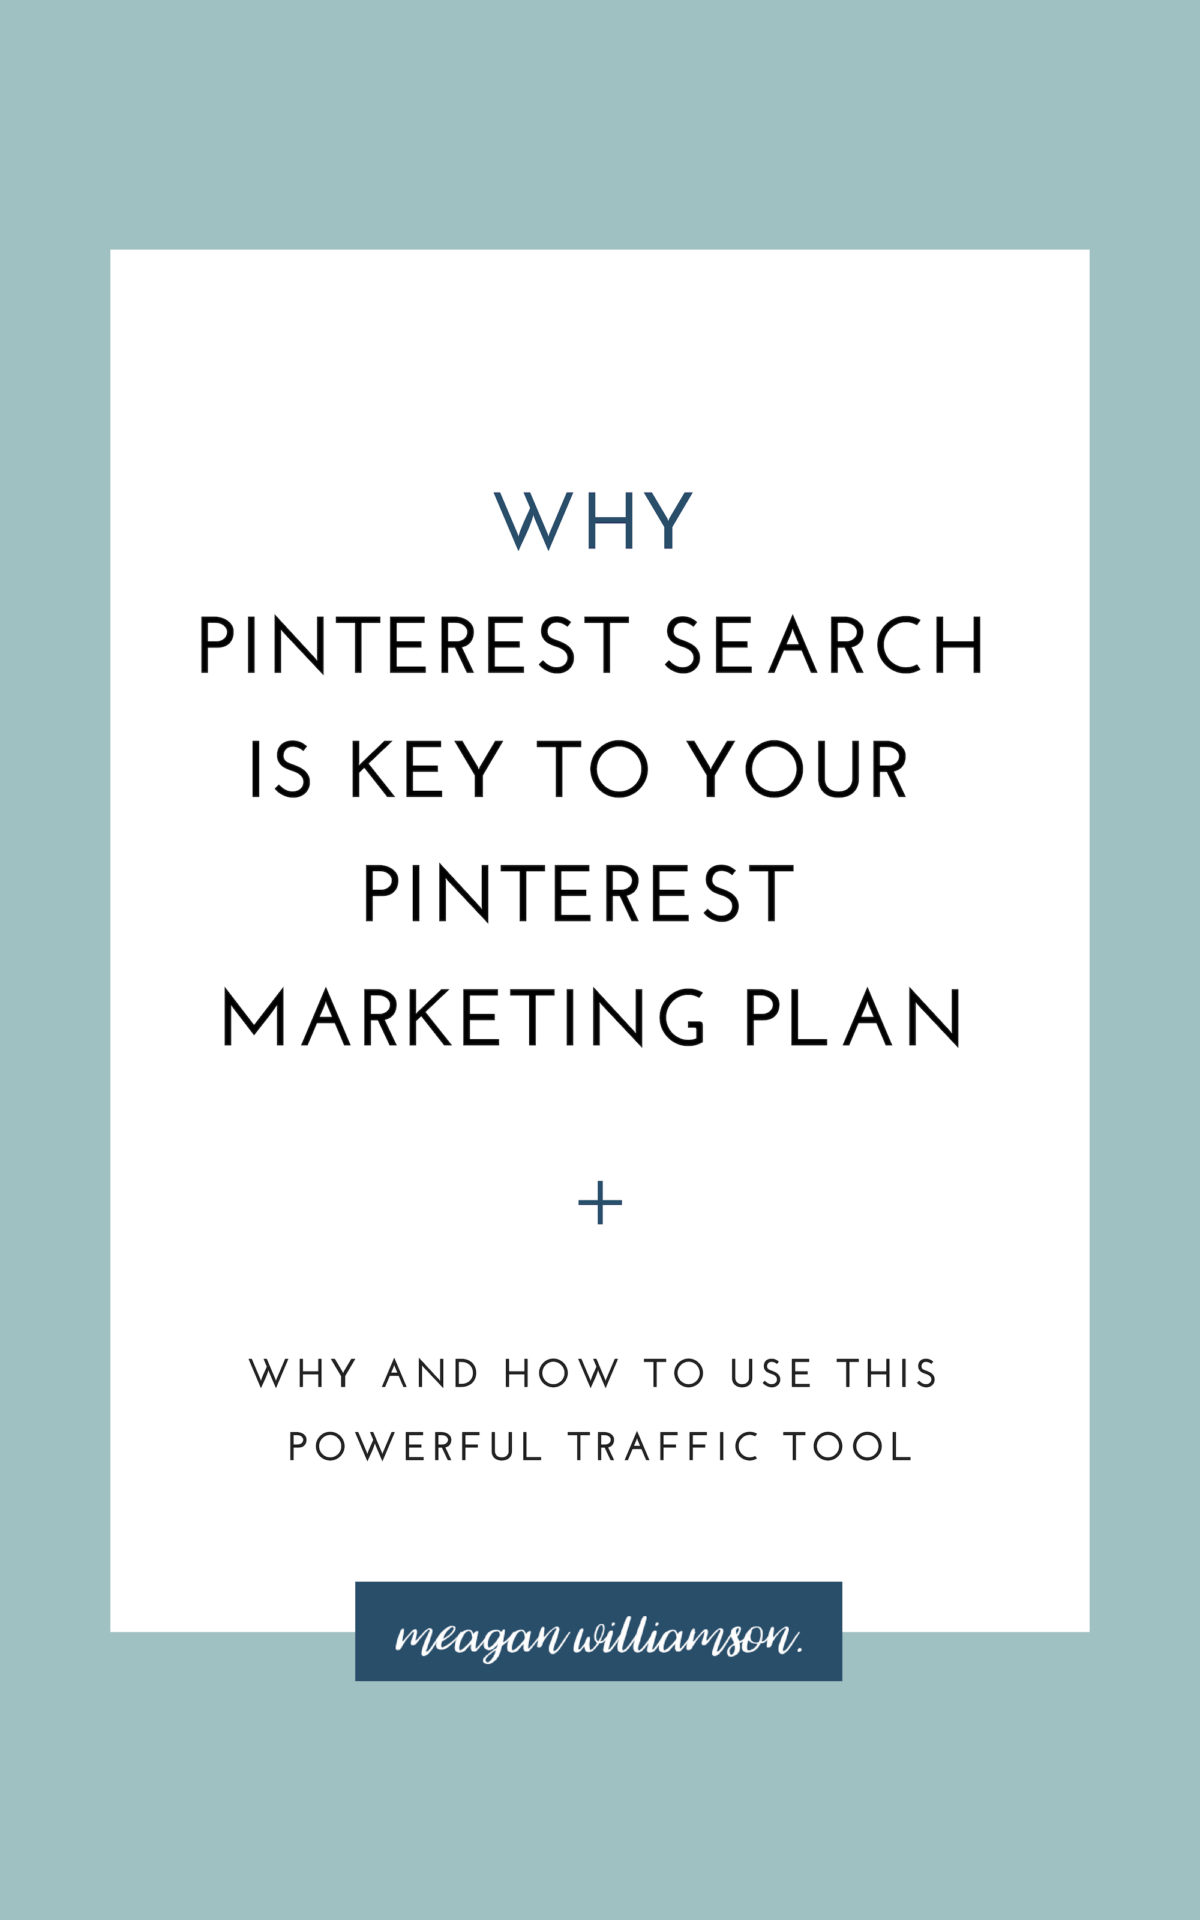 light blue background with white box on top - text about pinterest search